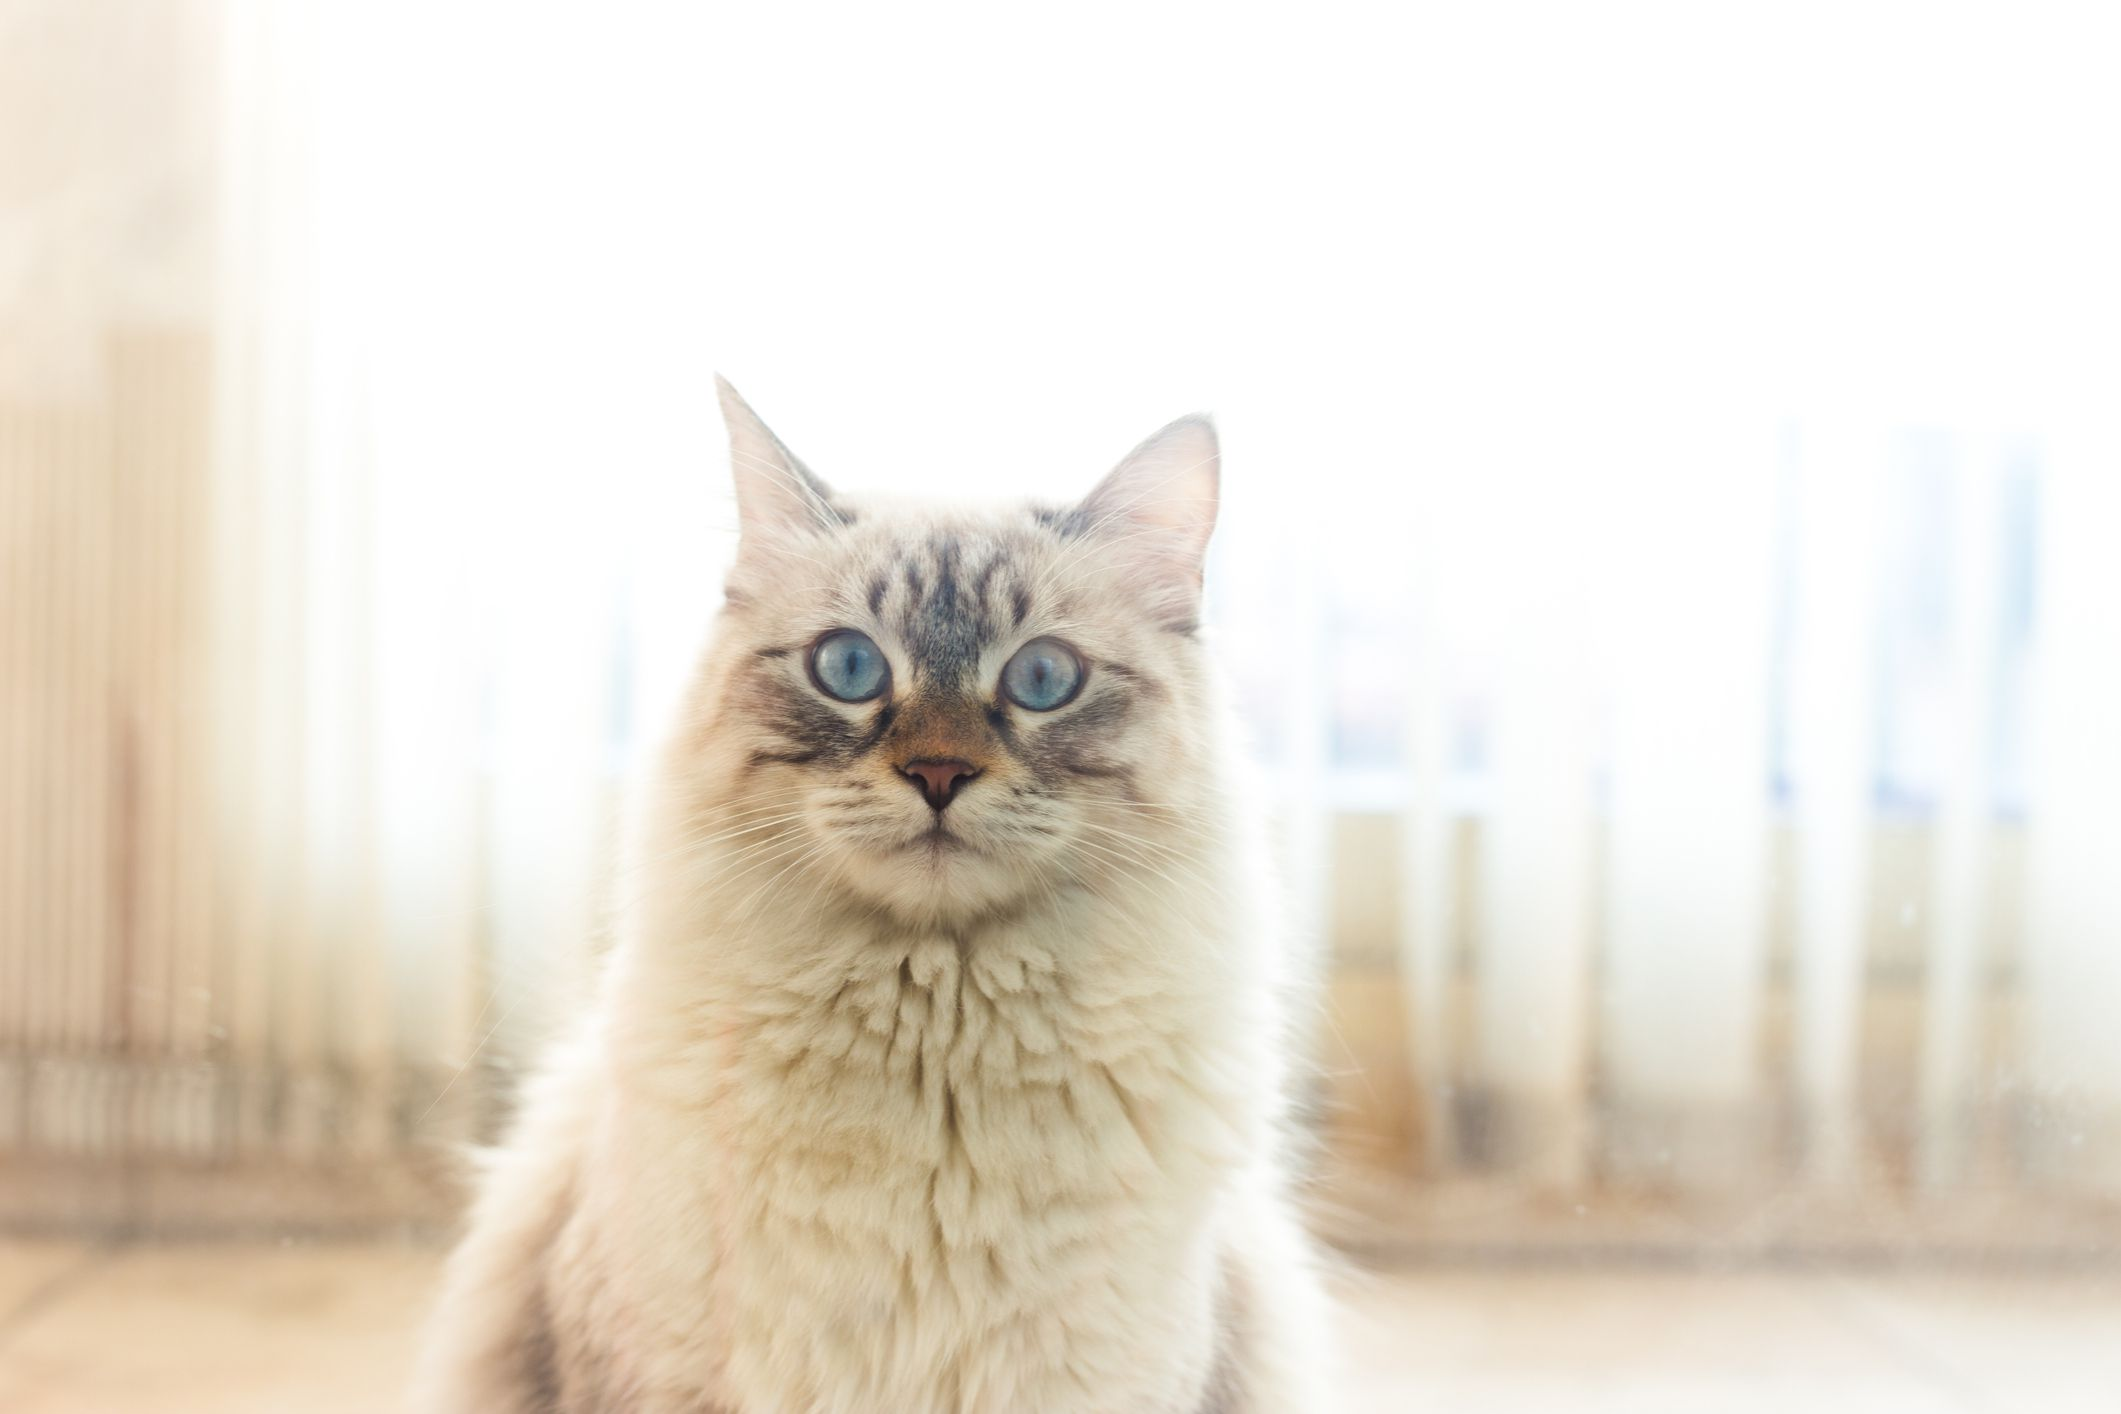 A long-haired white and tan cat with blue eyes looking at the camera standing in front of white curtains.